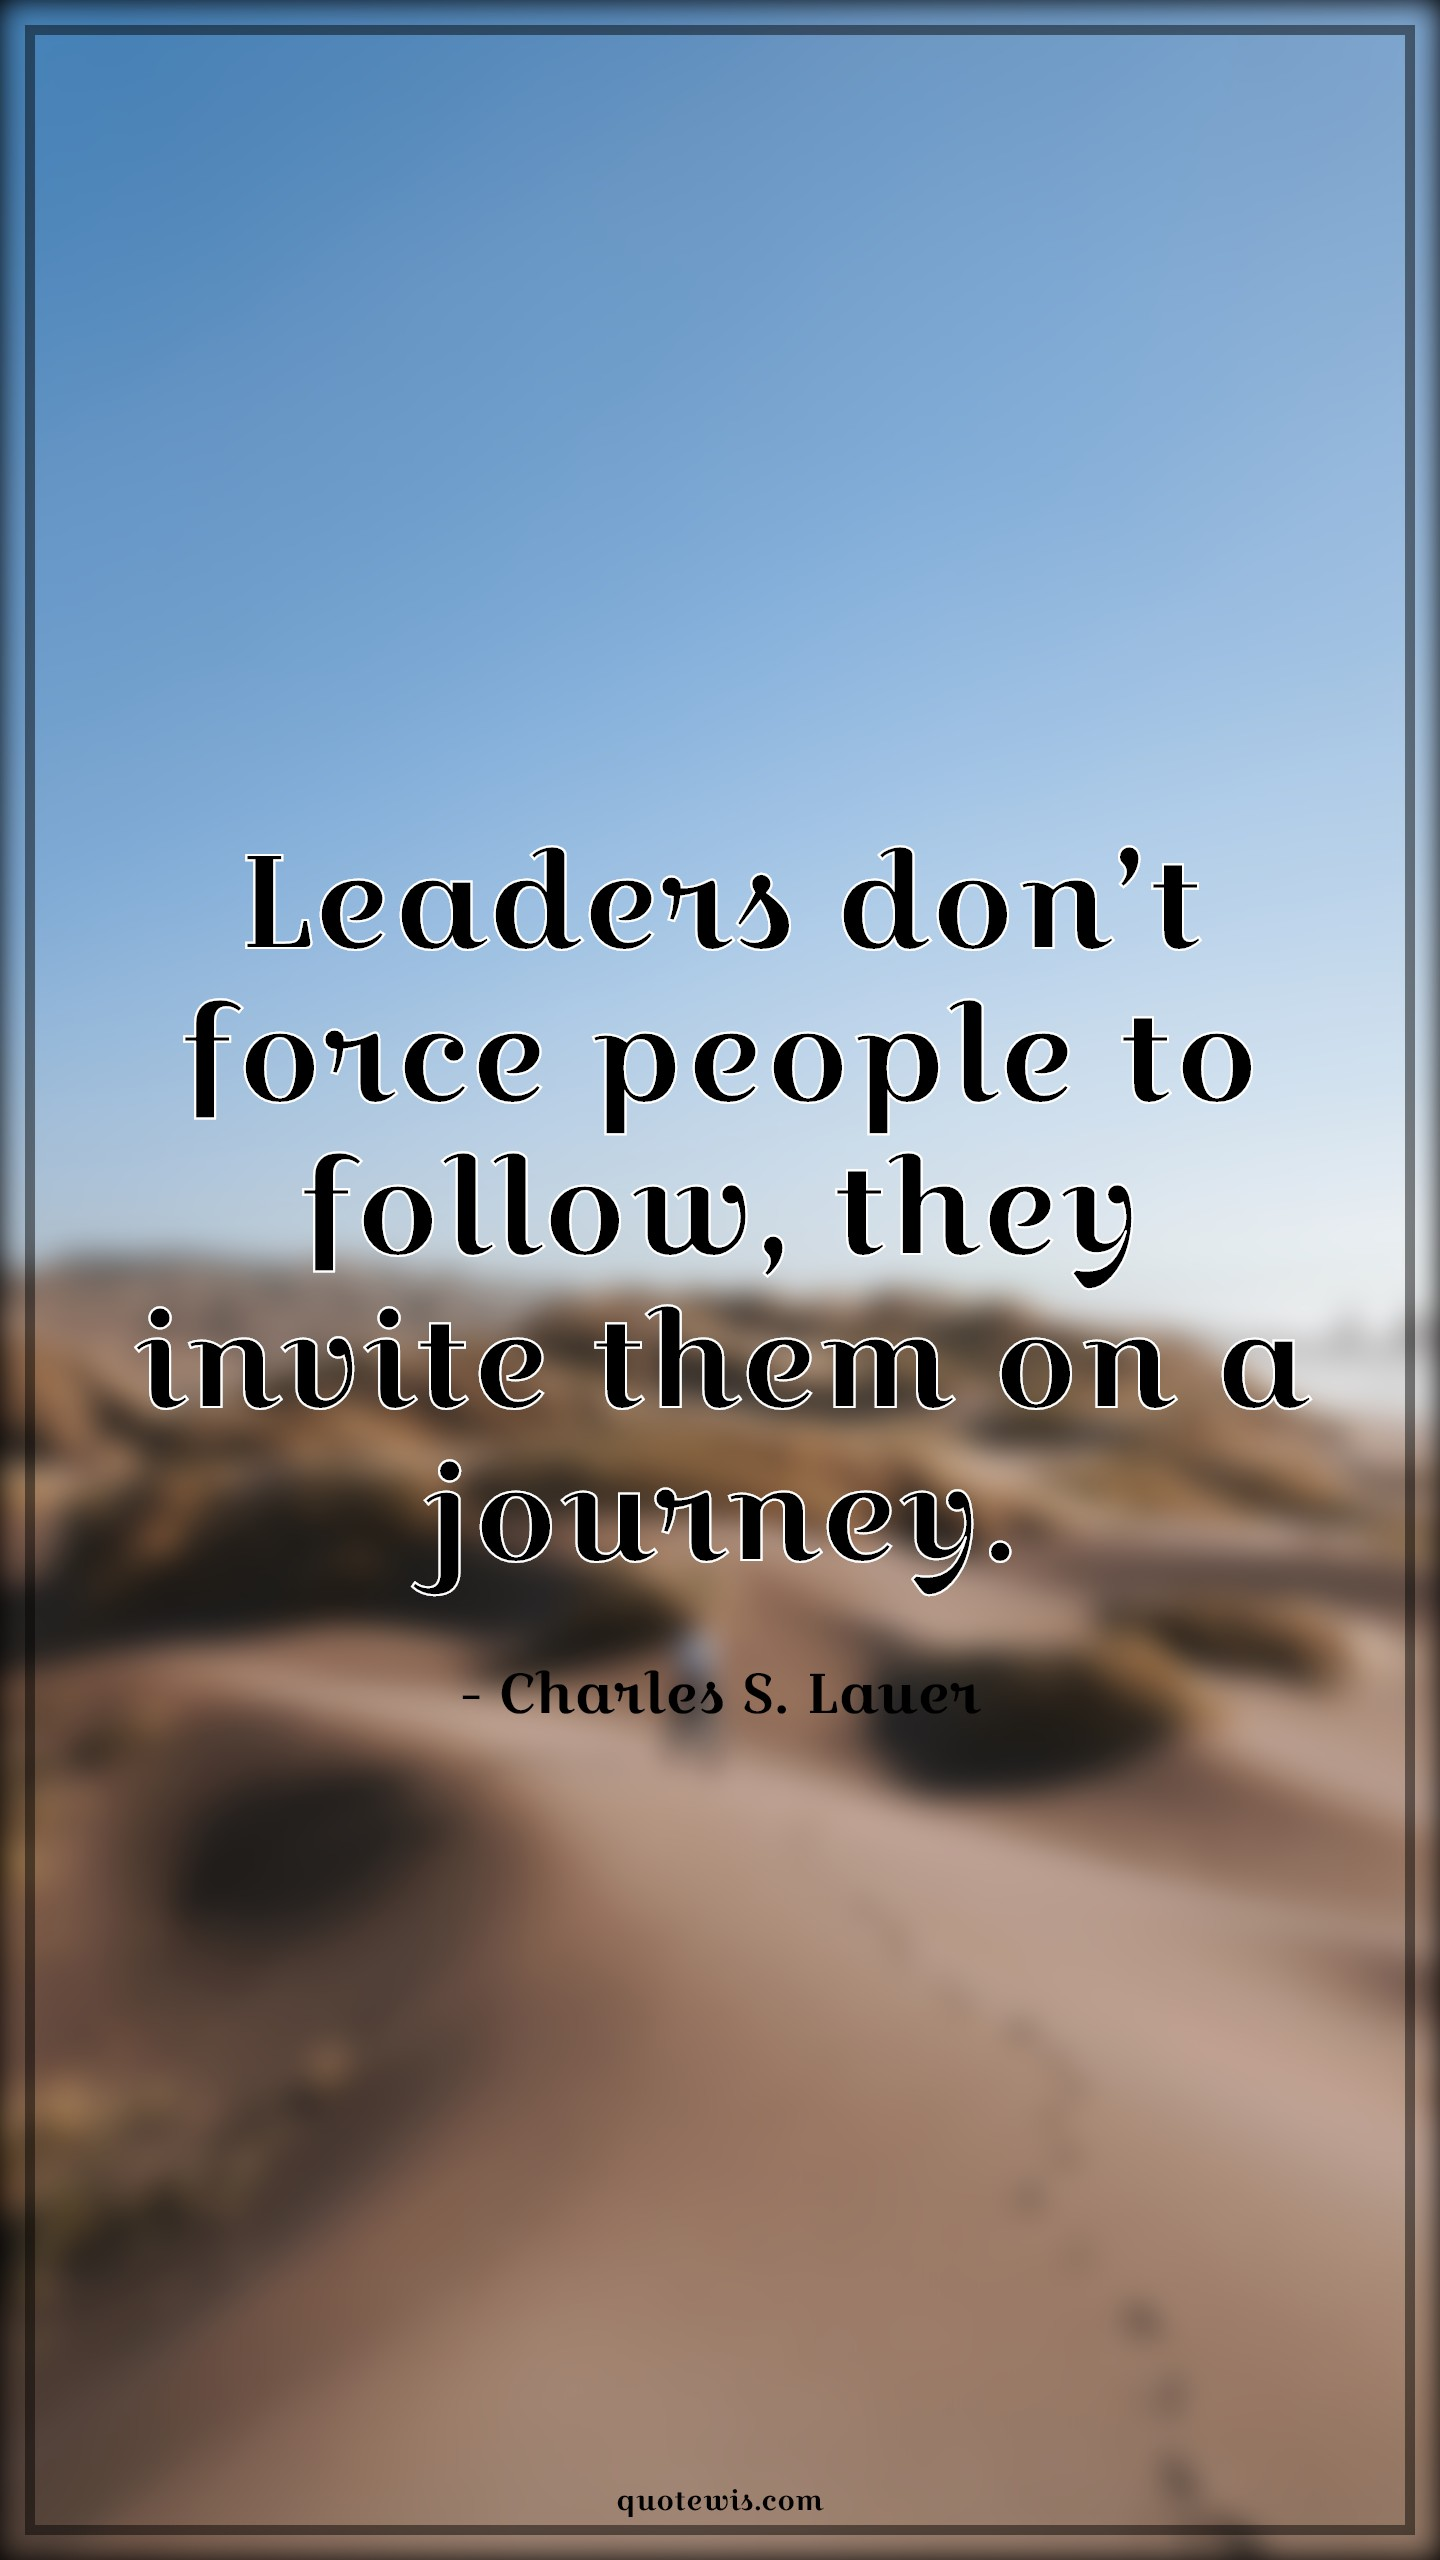 Leaders don't force people to follow, they invite them on a journey.